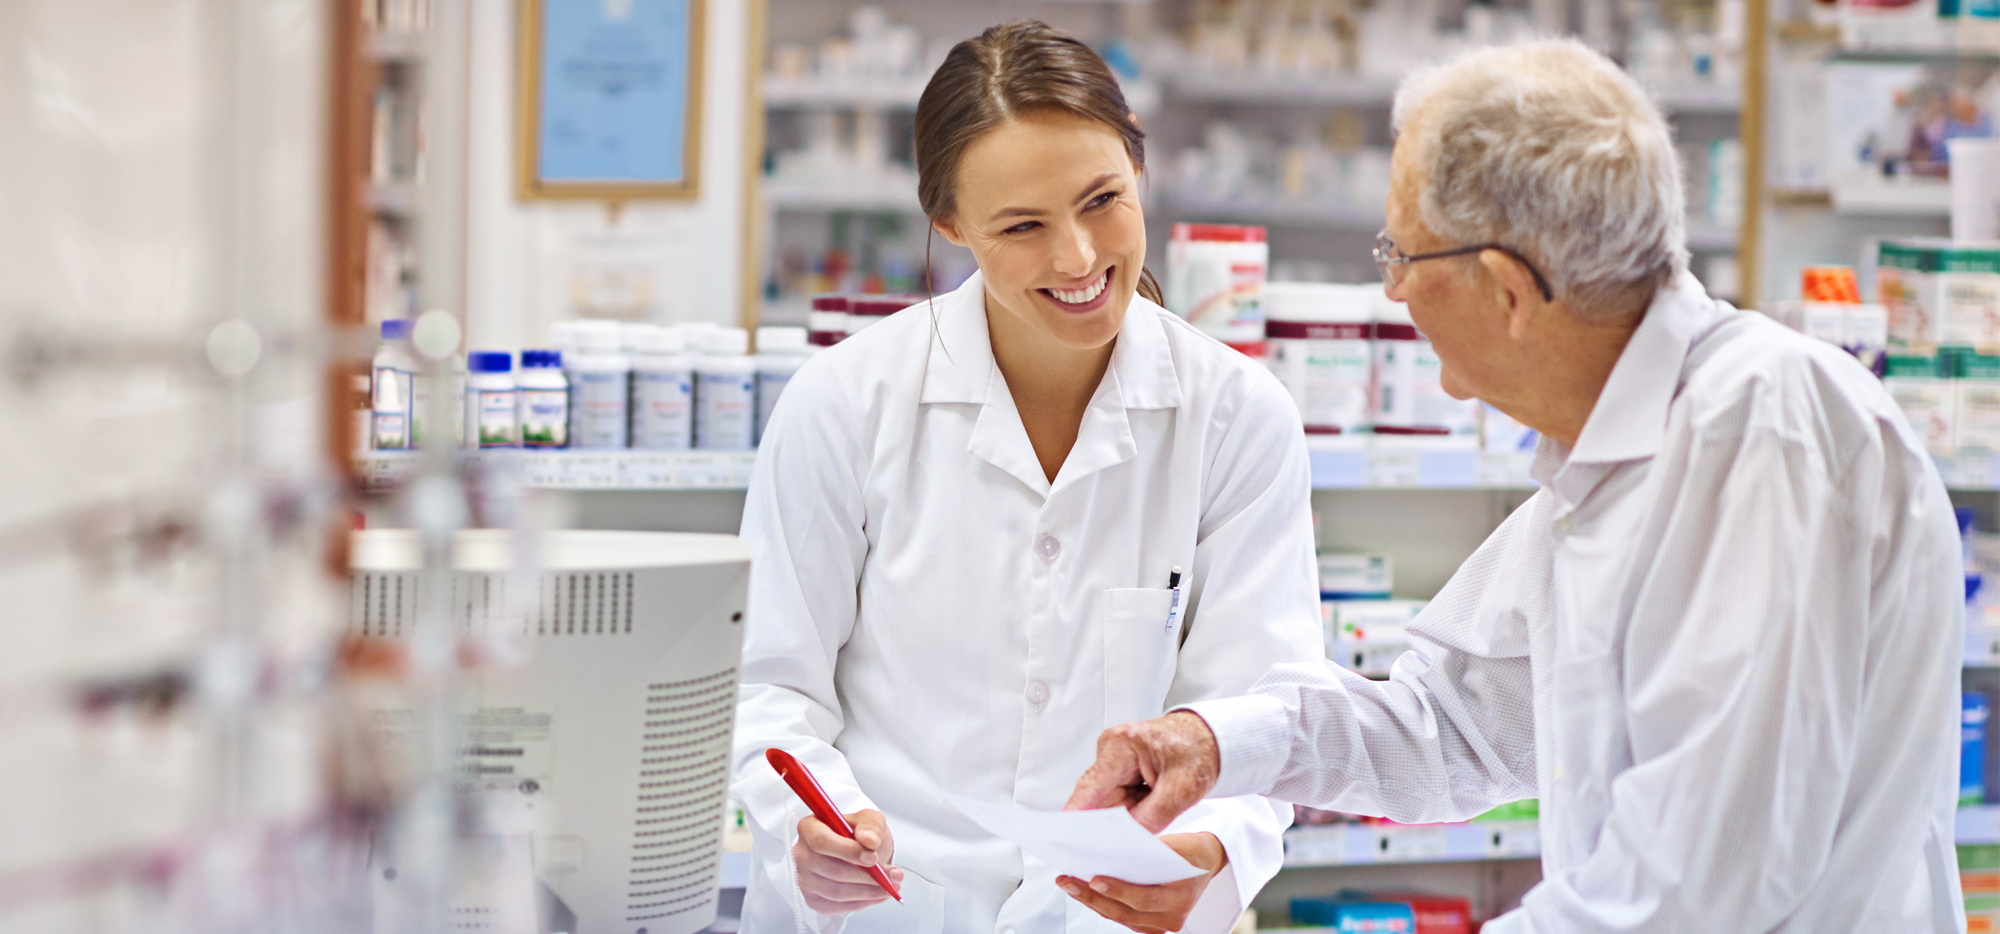 smiling pharmacist talking to patient